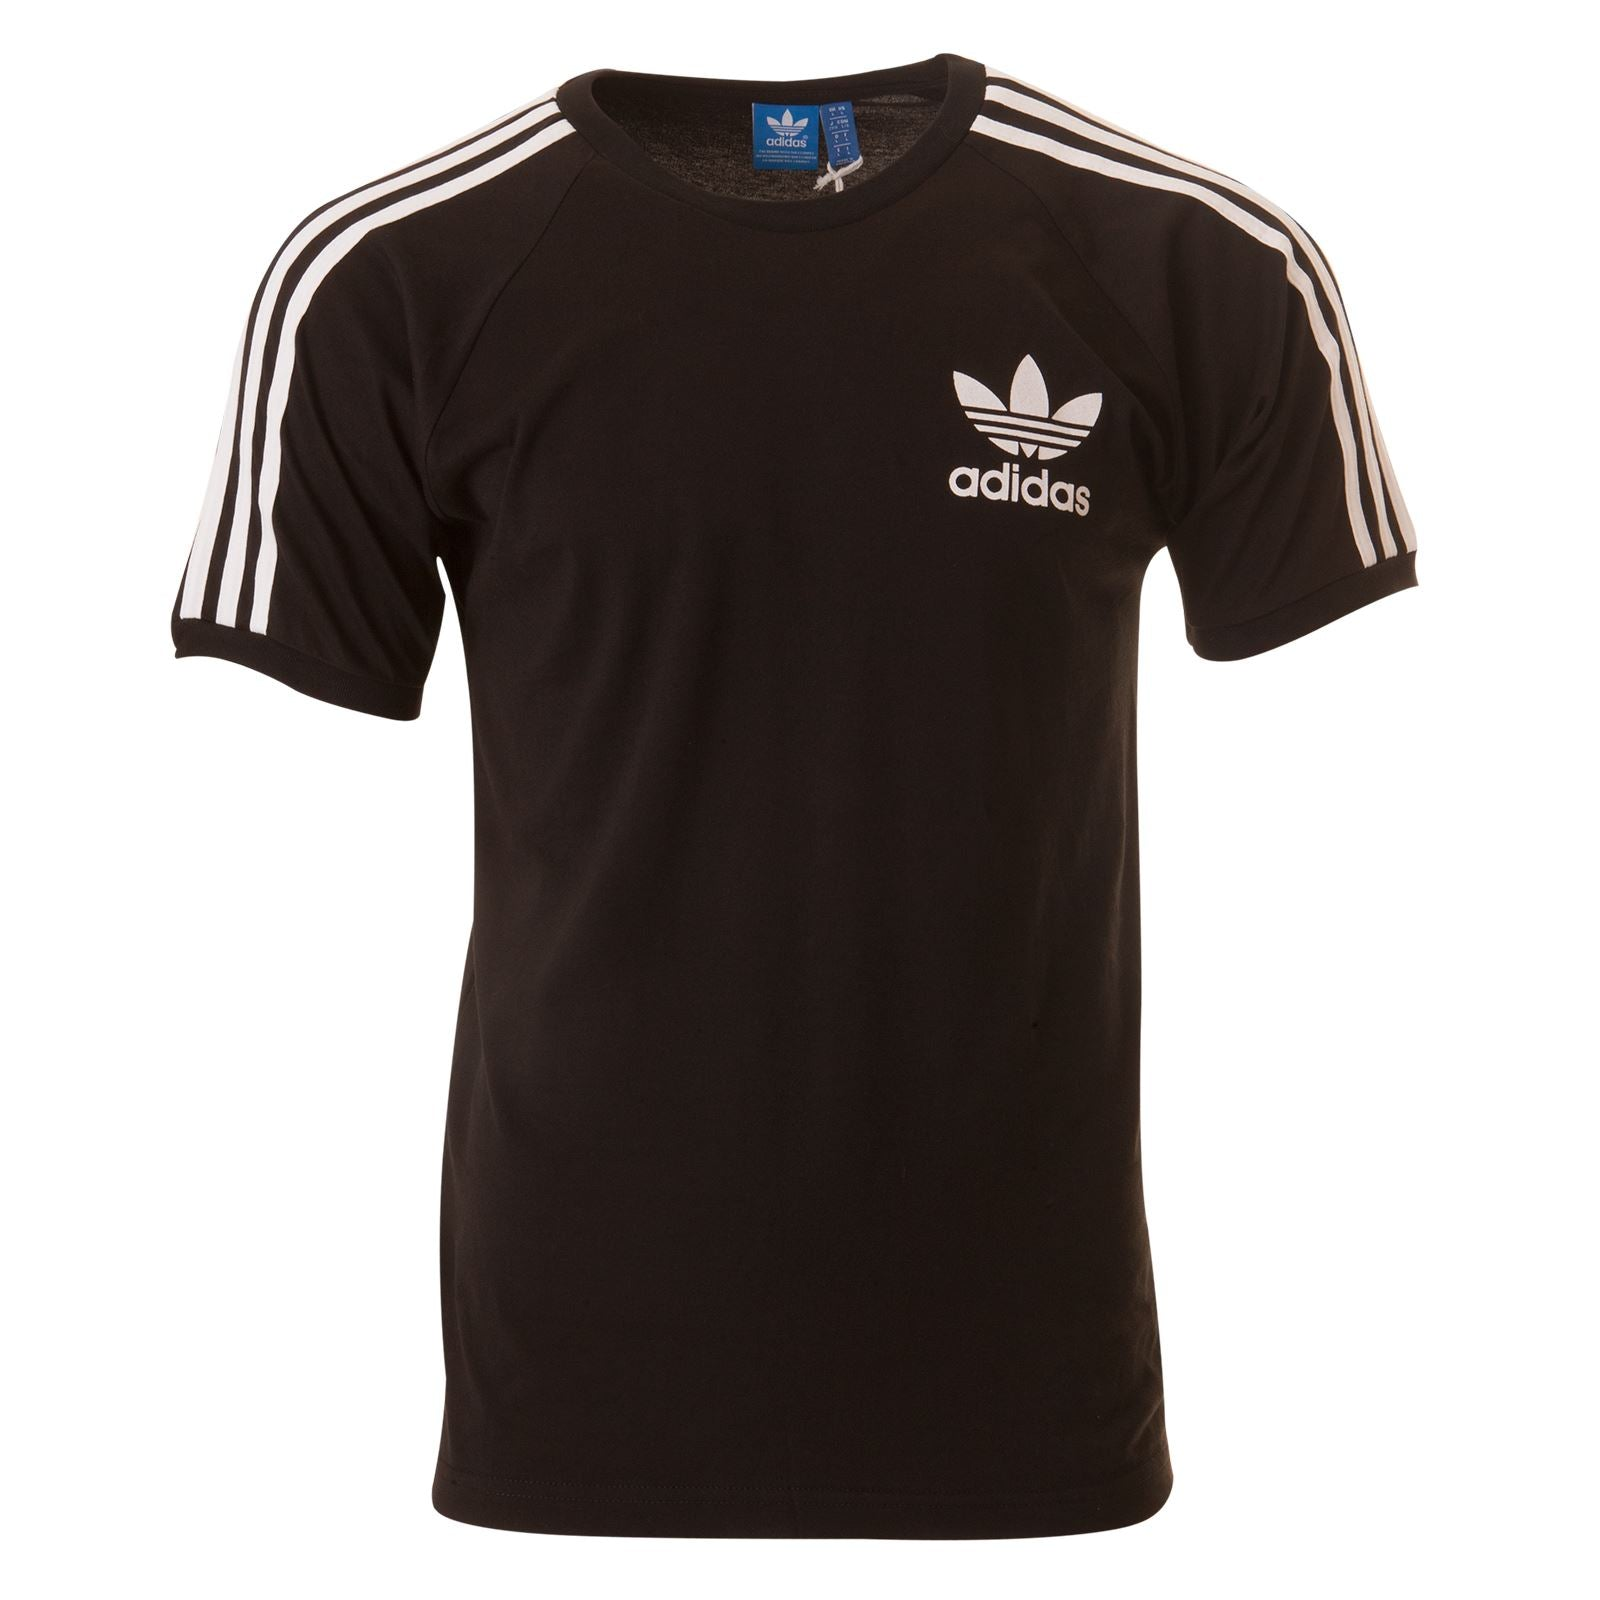 ADIDAS ORIGINALS SPORT ESSENTIALS CALIFORNIA TEE Mens BLACK/NAVY/BLUE/WHITE S-XL BLACK PRINT